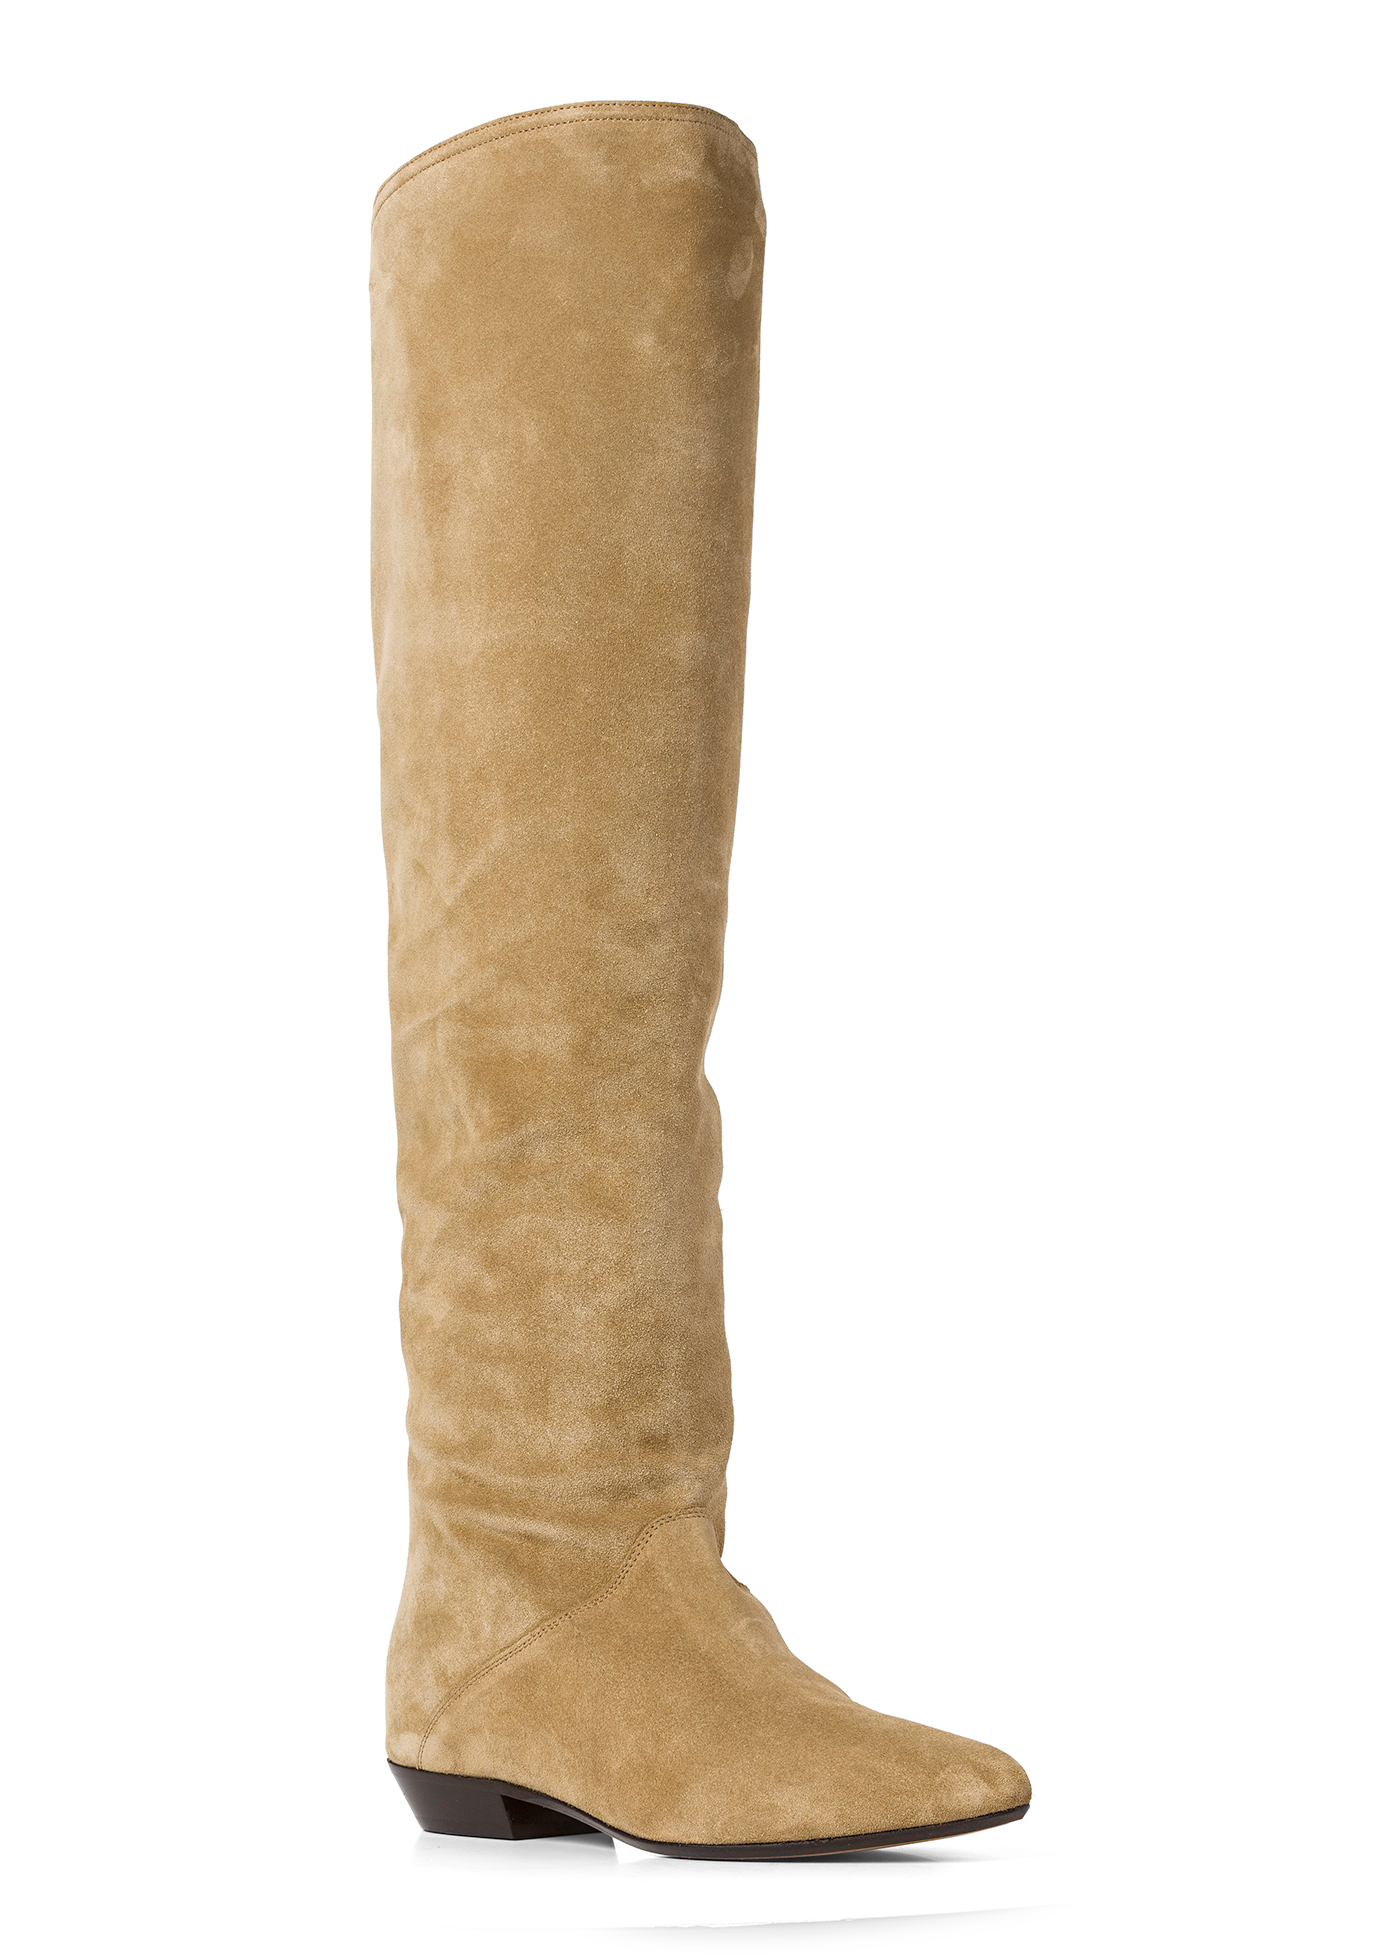 Seelys High Boot image number 1